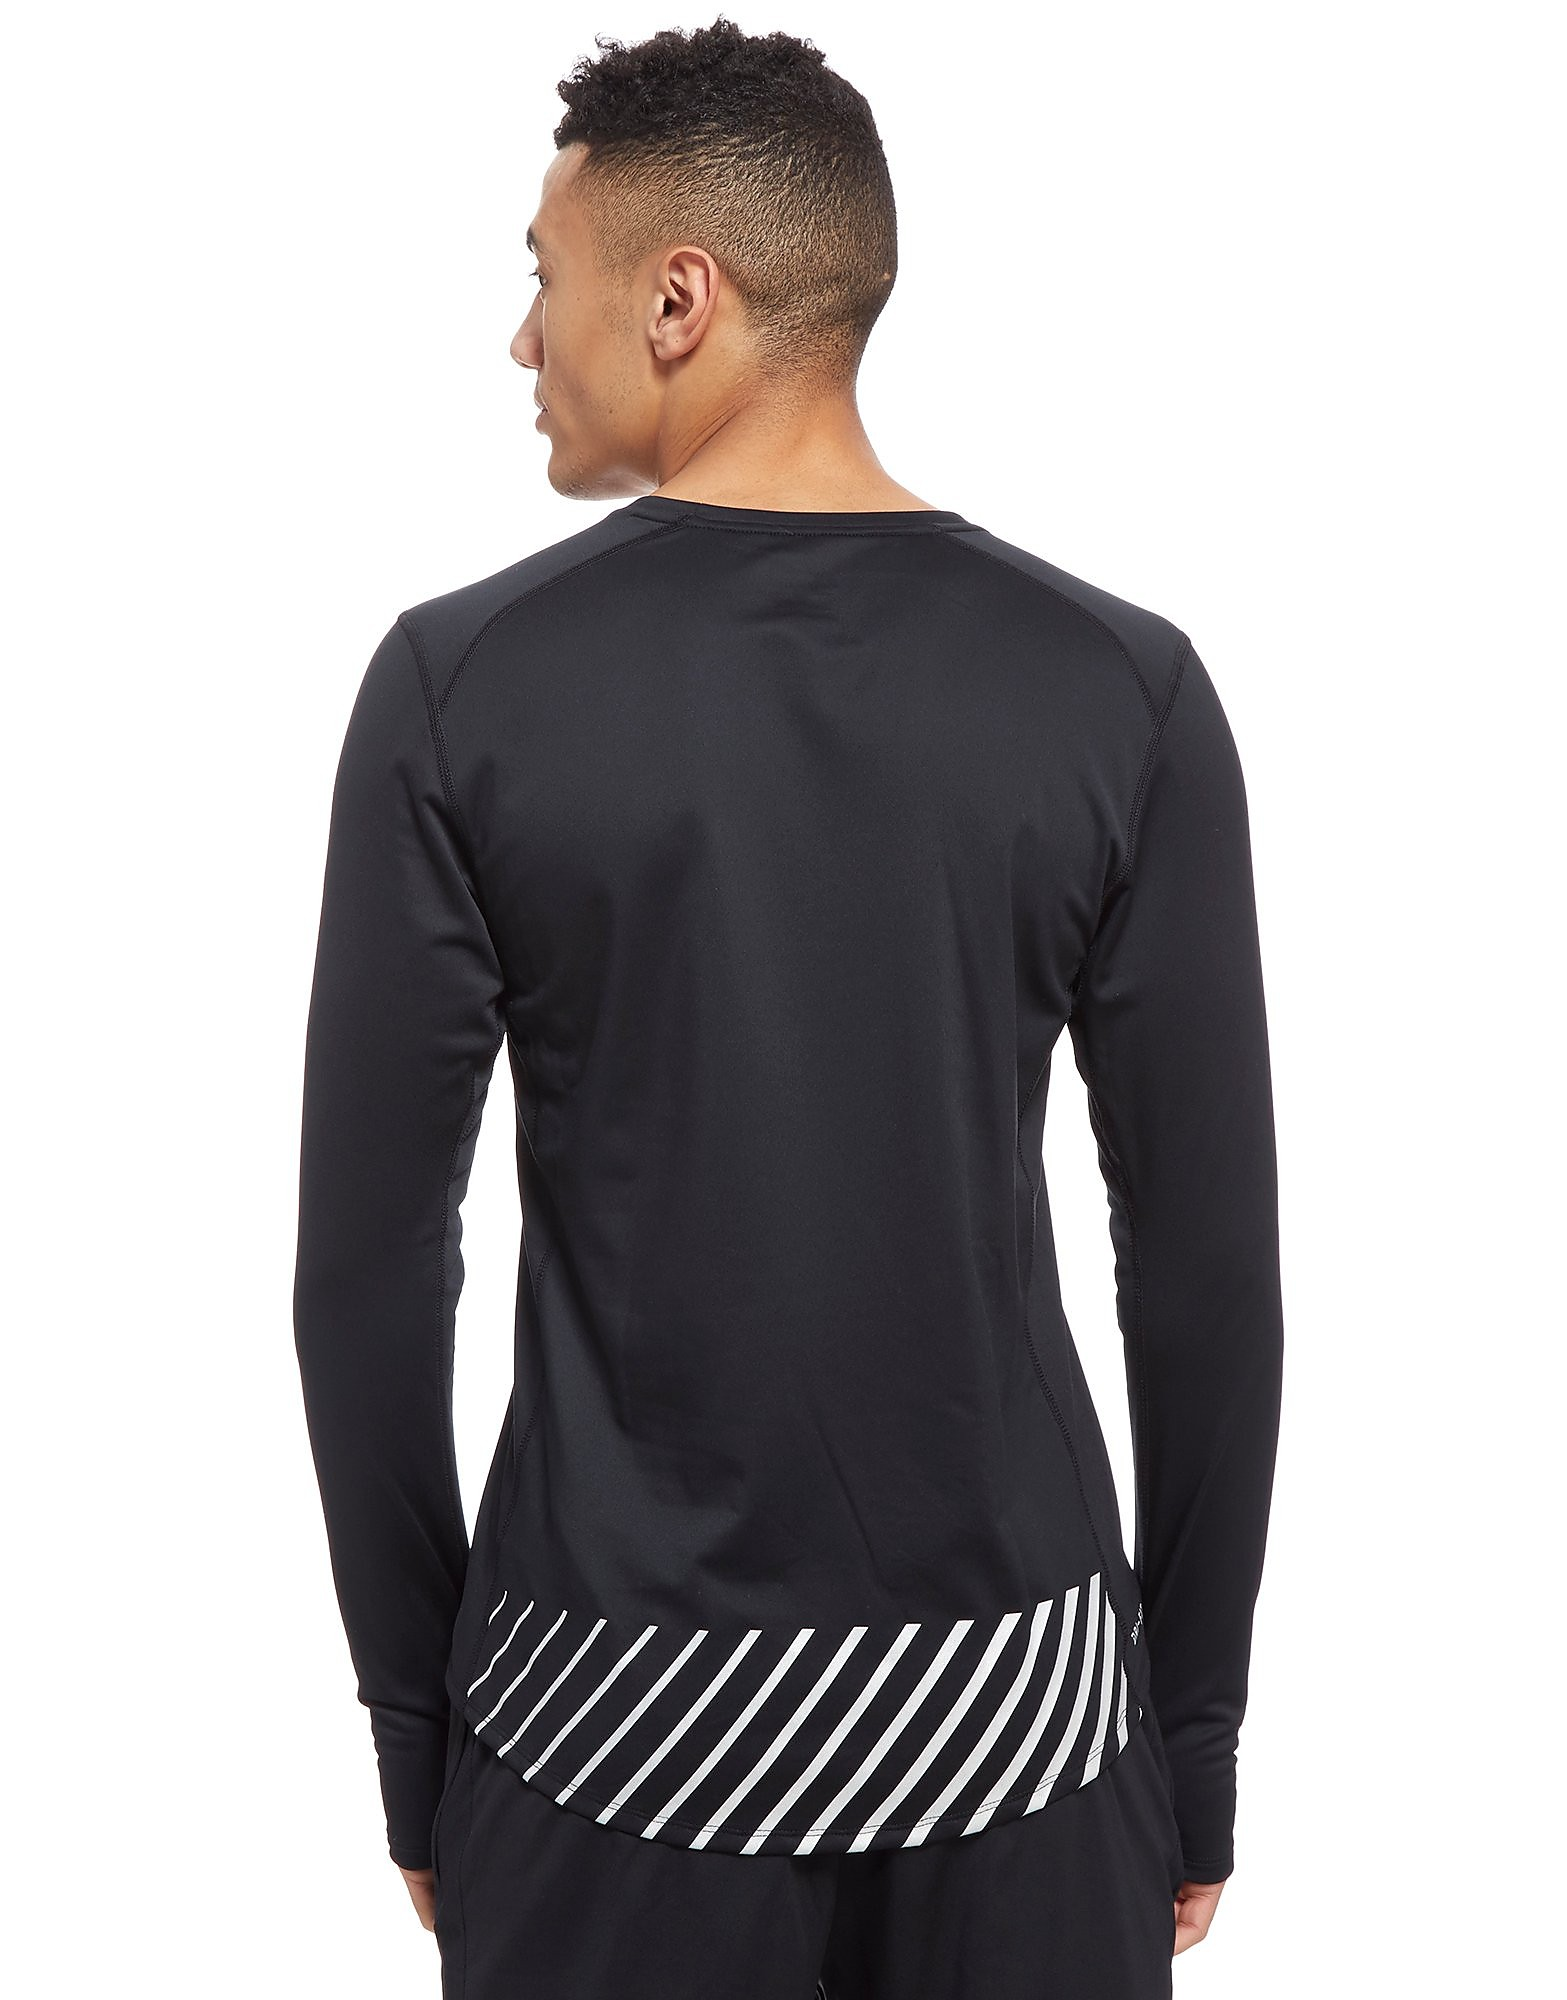 Nike Miler Flash Running Top